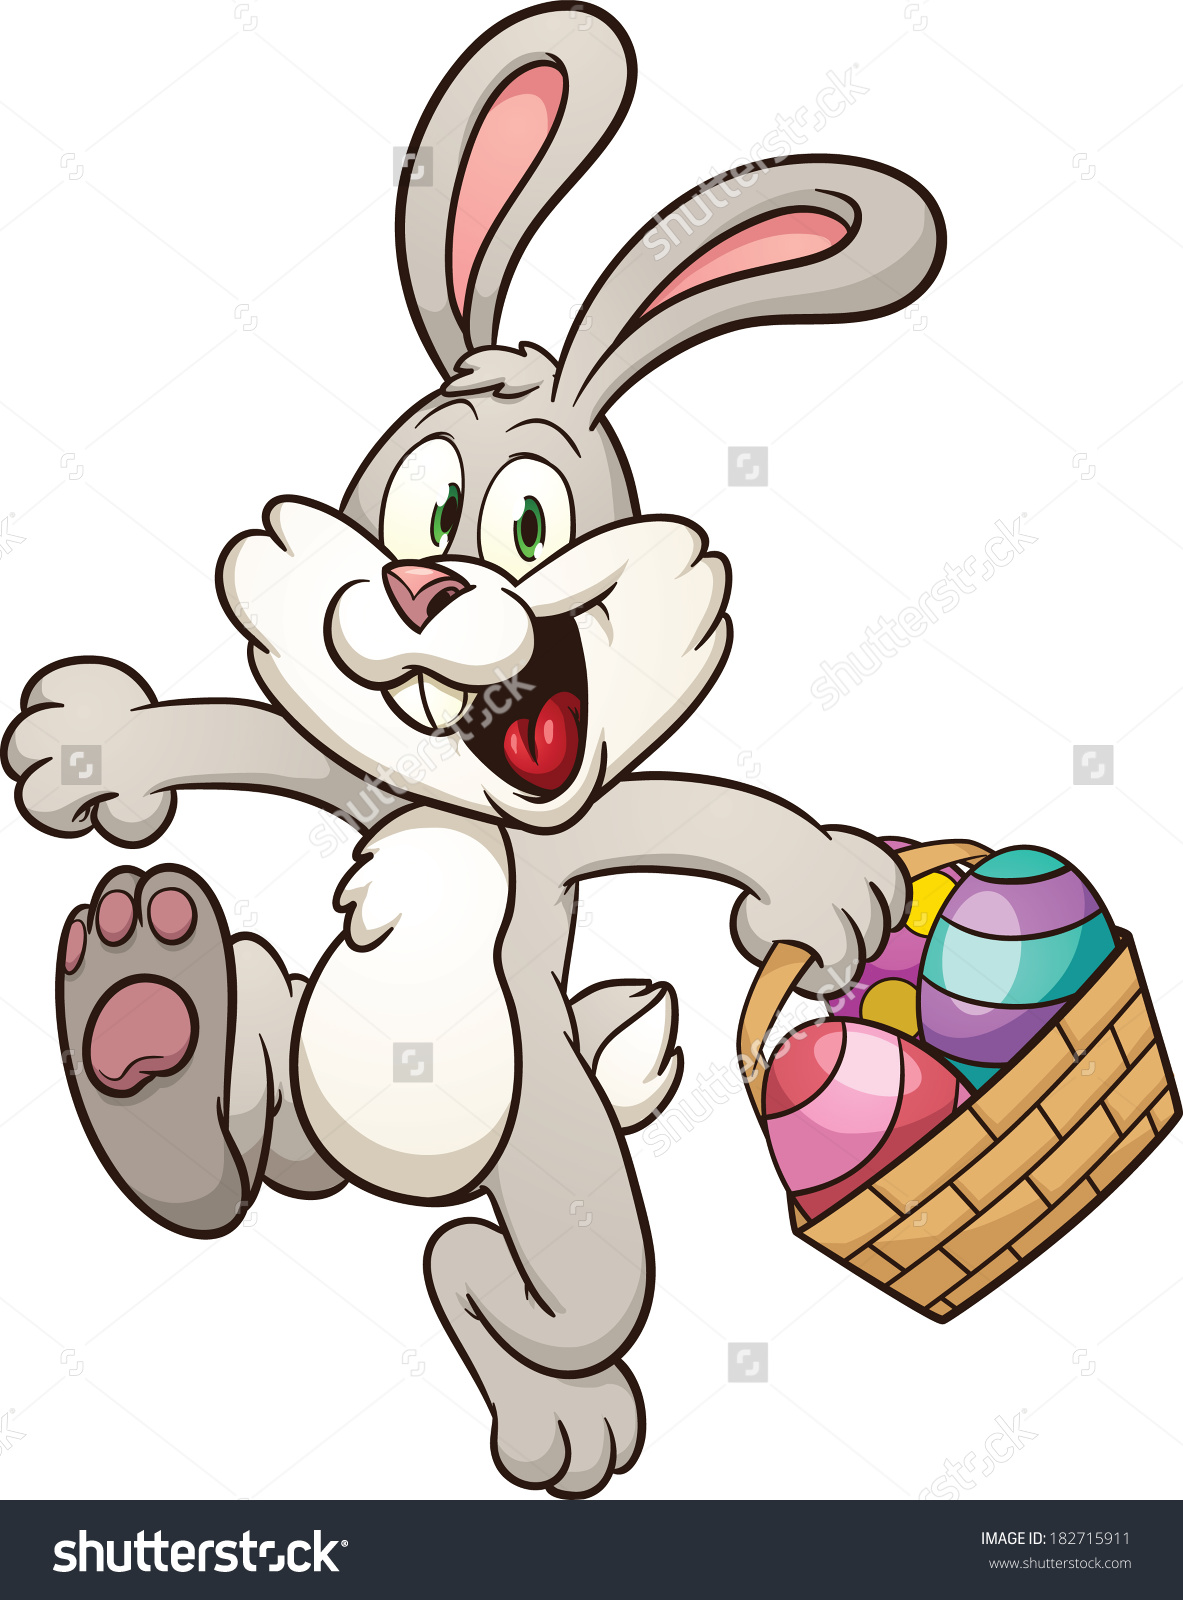 30 easter egg clipart clip art download 30+ Easter Bunny Pictures For Drawing, Cartoon Images & Photos ... clip art download